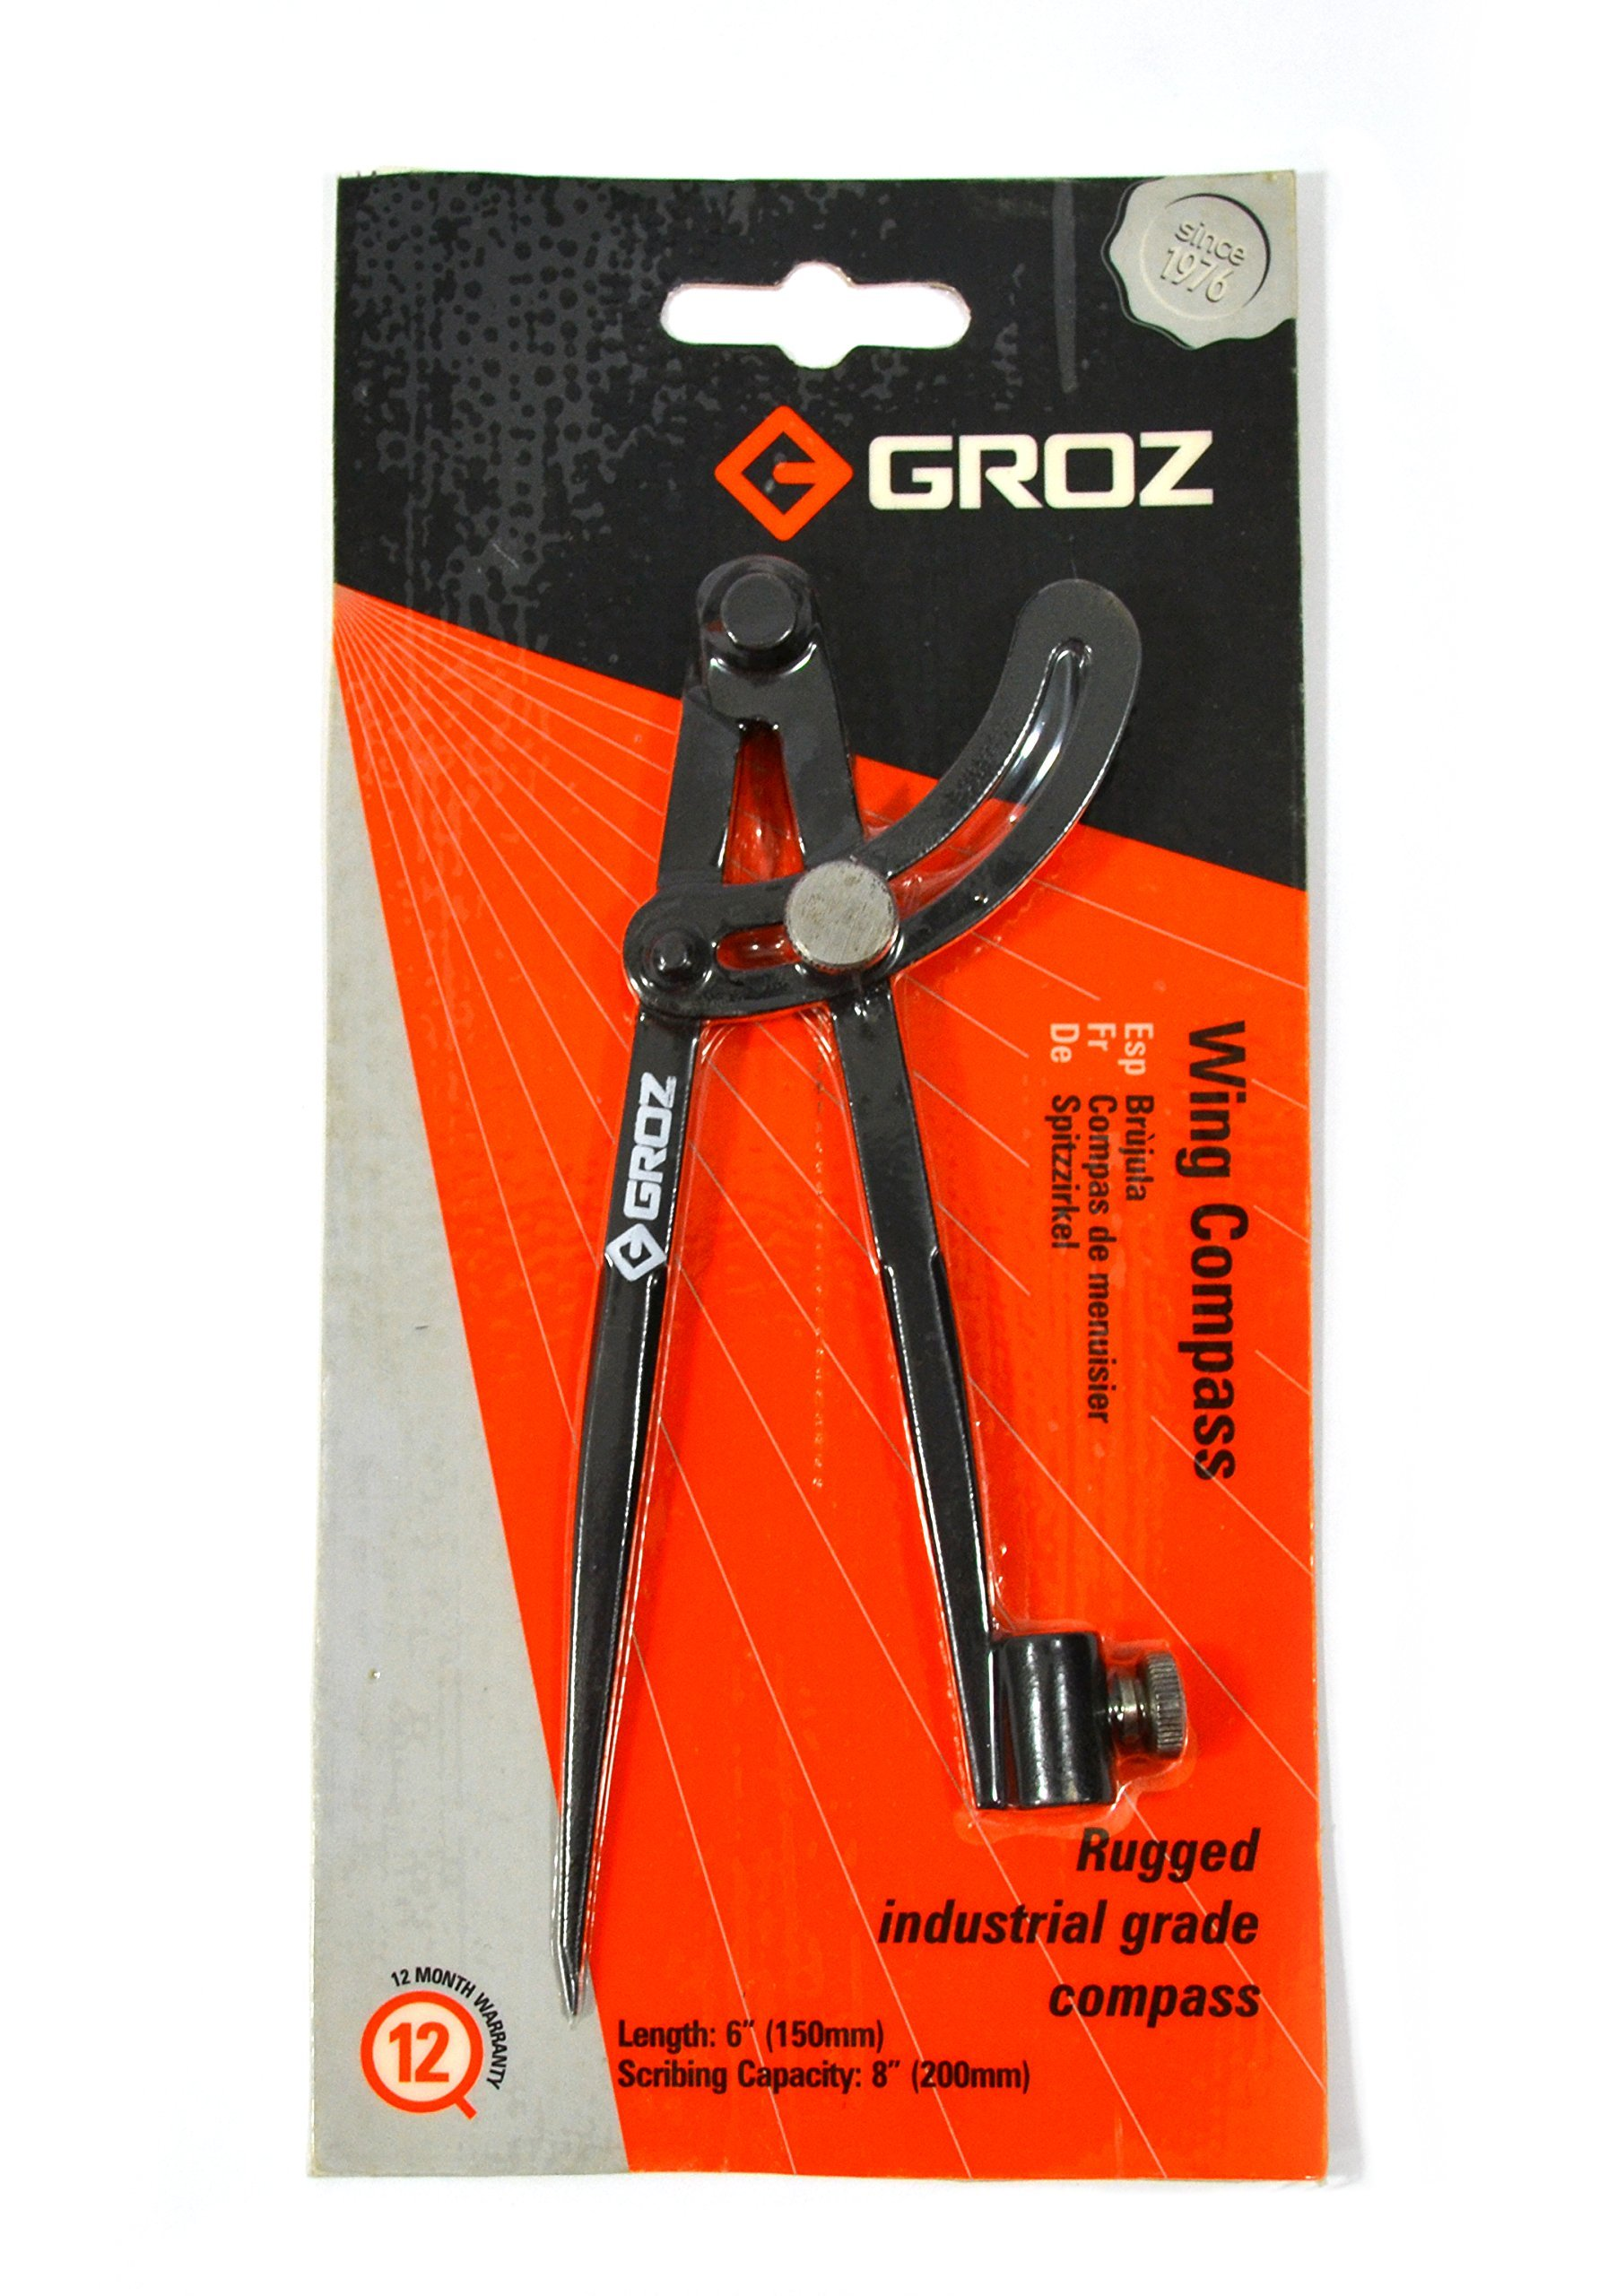 GROZ 6-inch Wing Compass   Industrial Grade (01550) by Groz (Image #1)